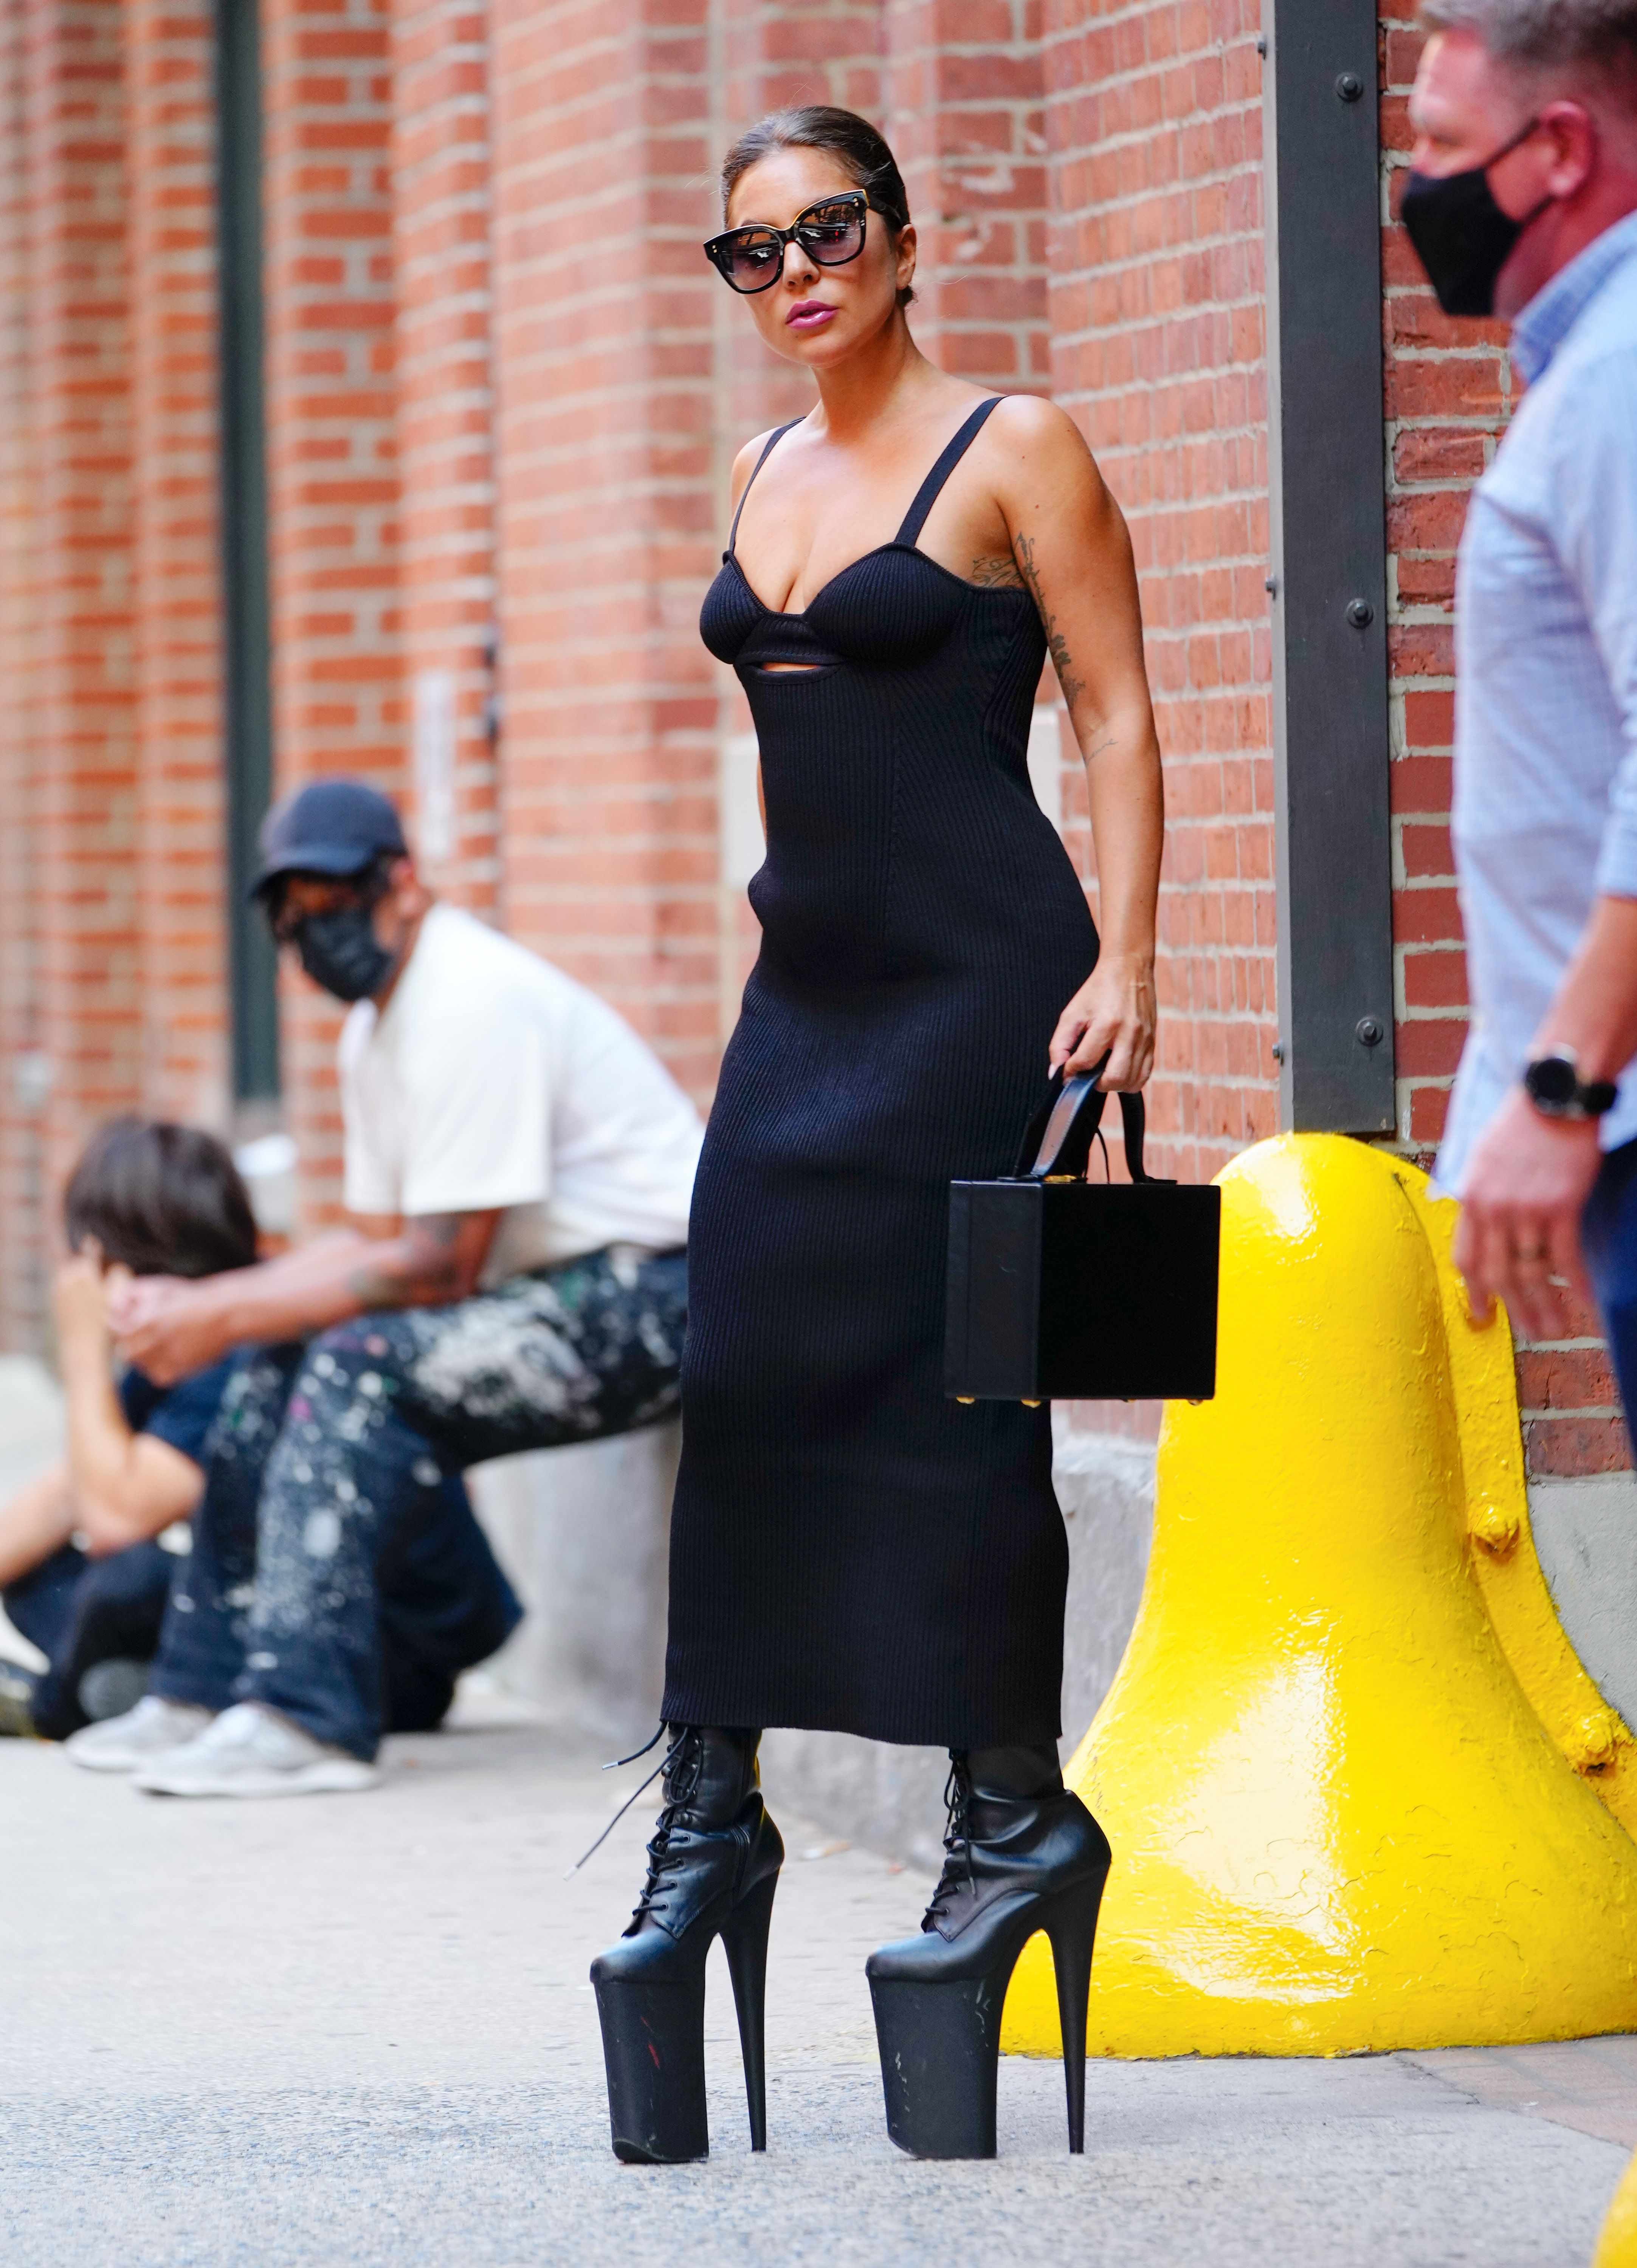 Lady Gaga Went Out in a Black Bustier Dress and Wild 9-Inch Platform Heels